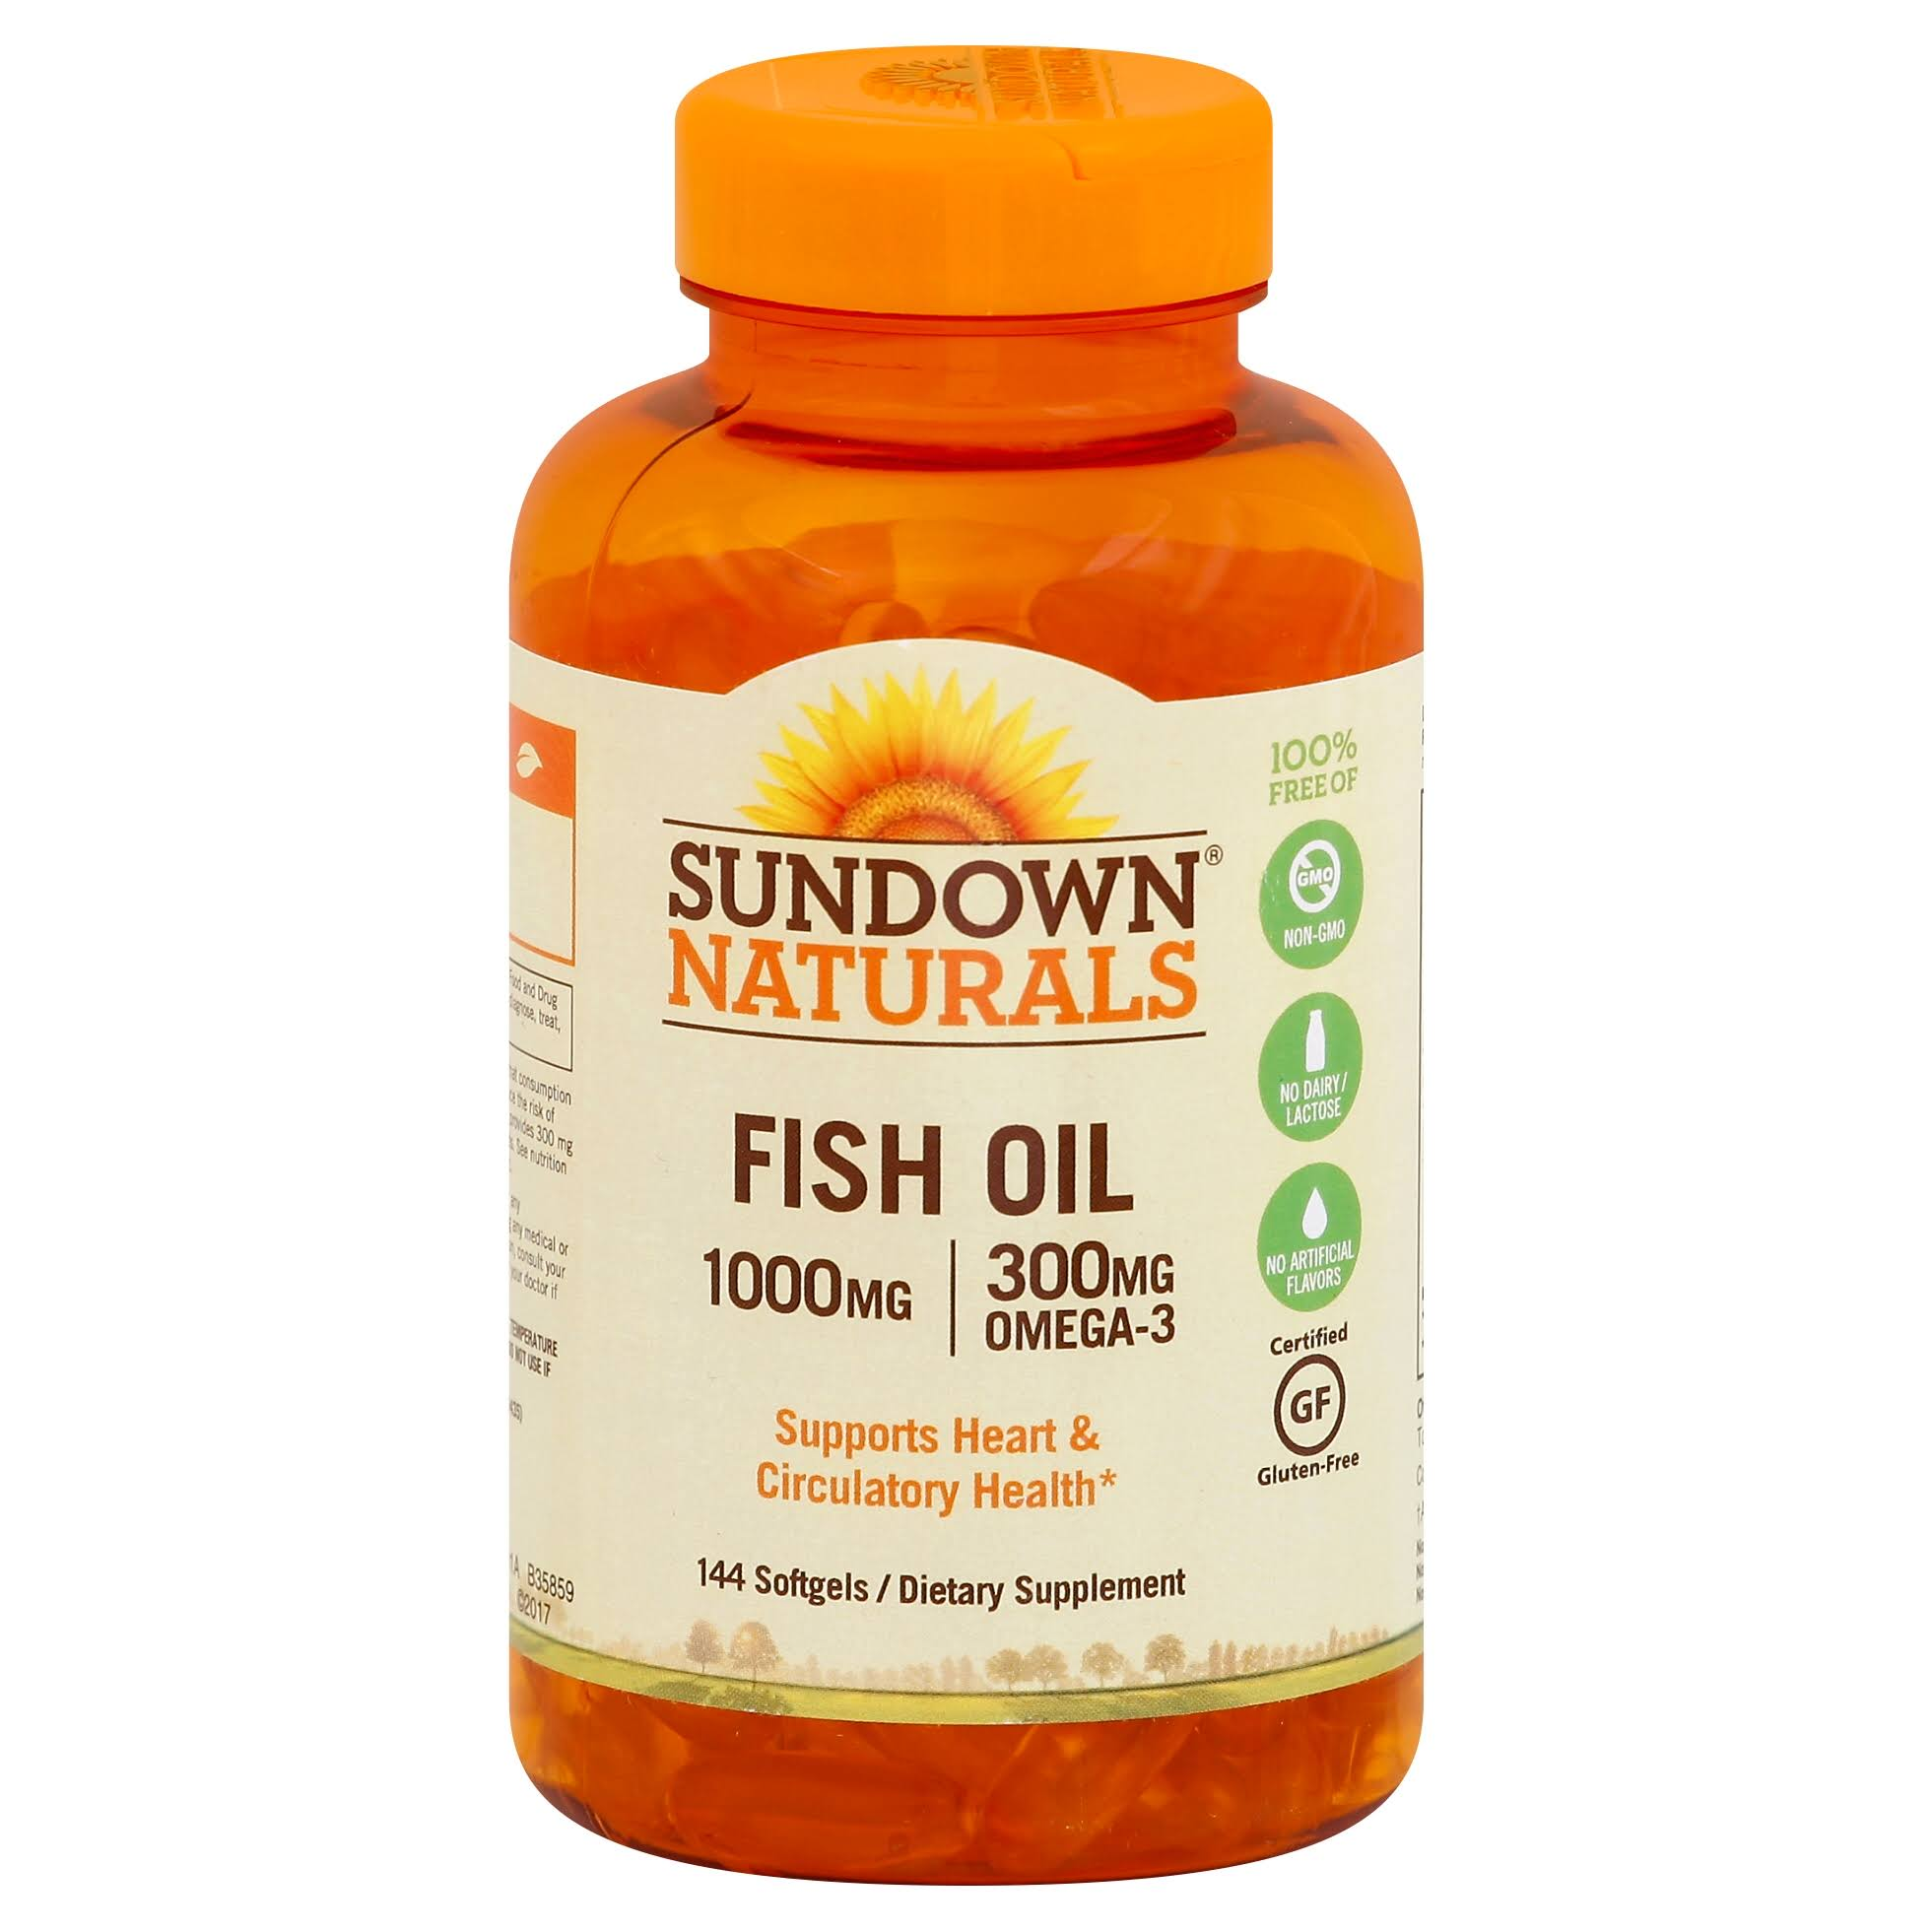 Sundown Naturals Fish Oil - 1000mg, 144 Softgels